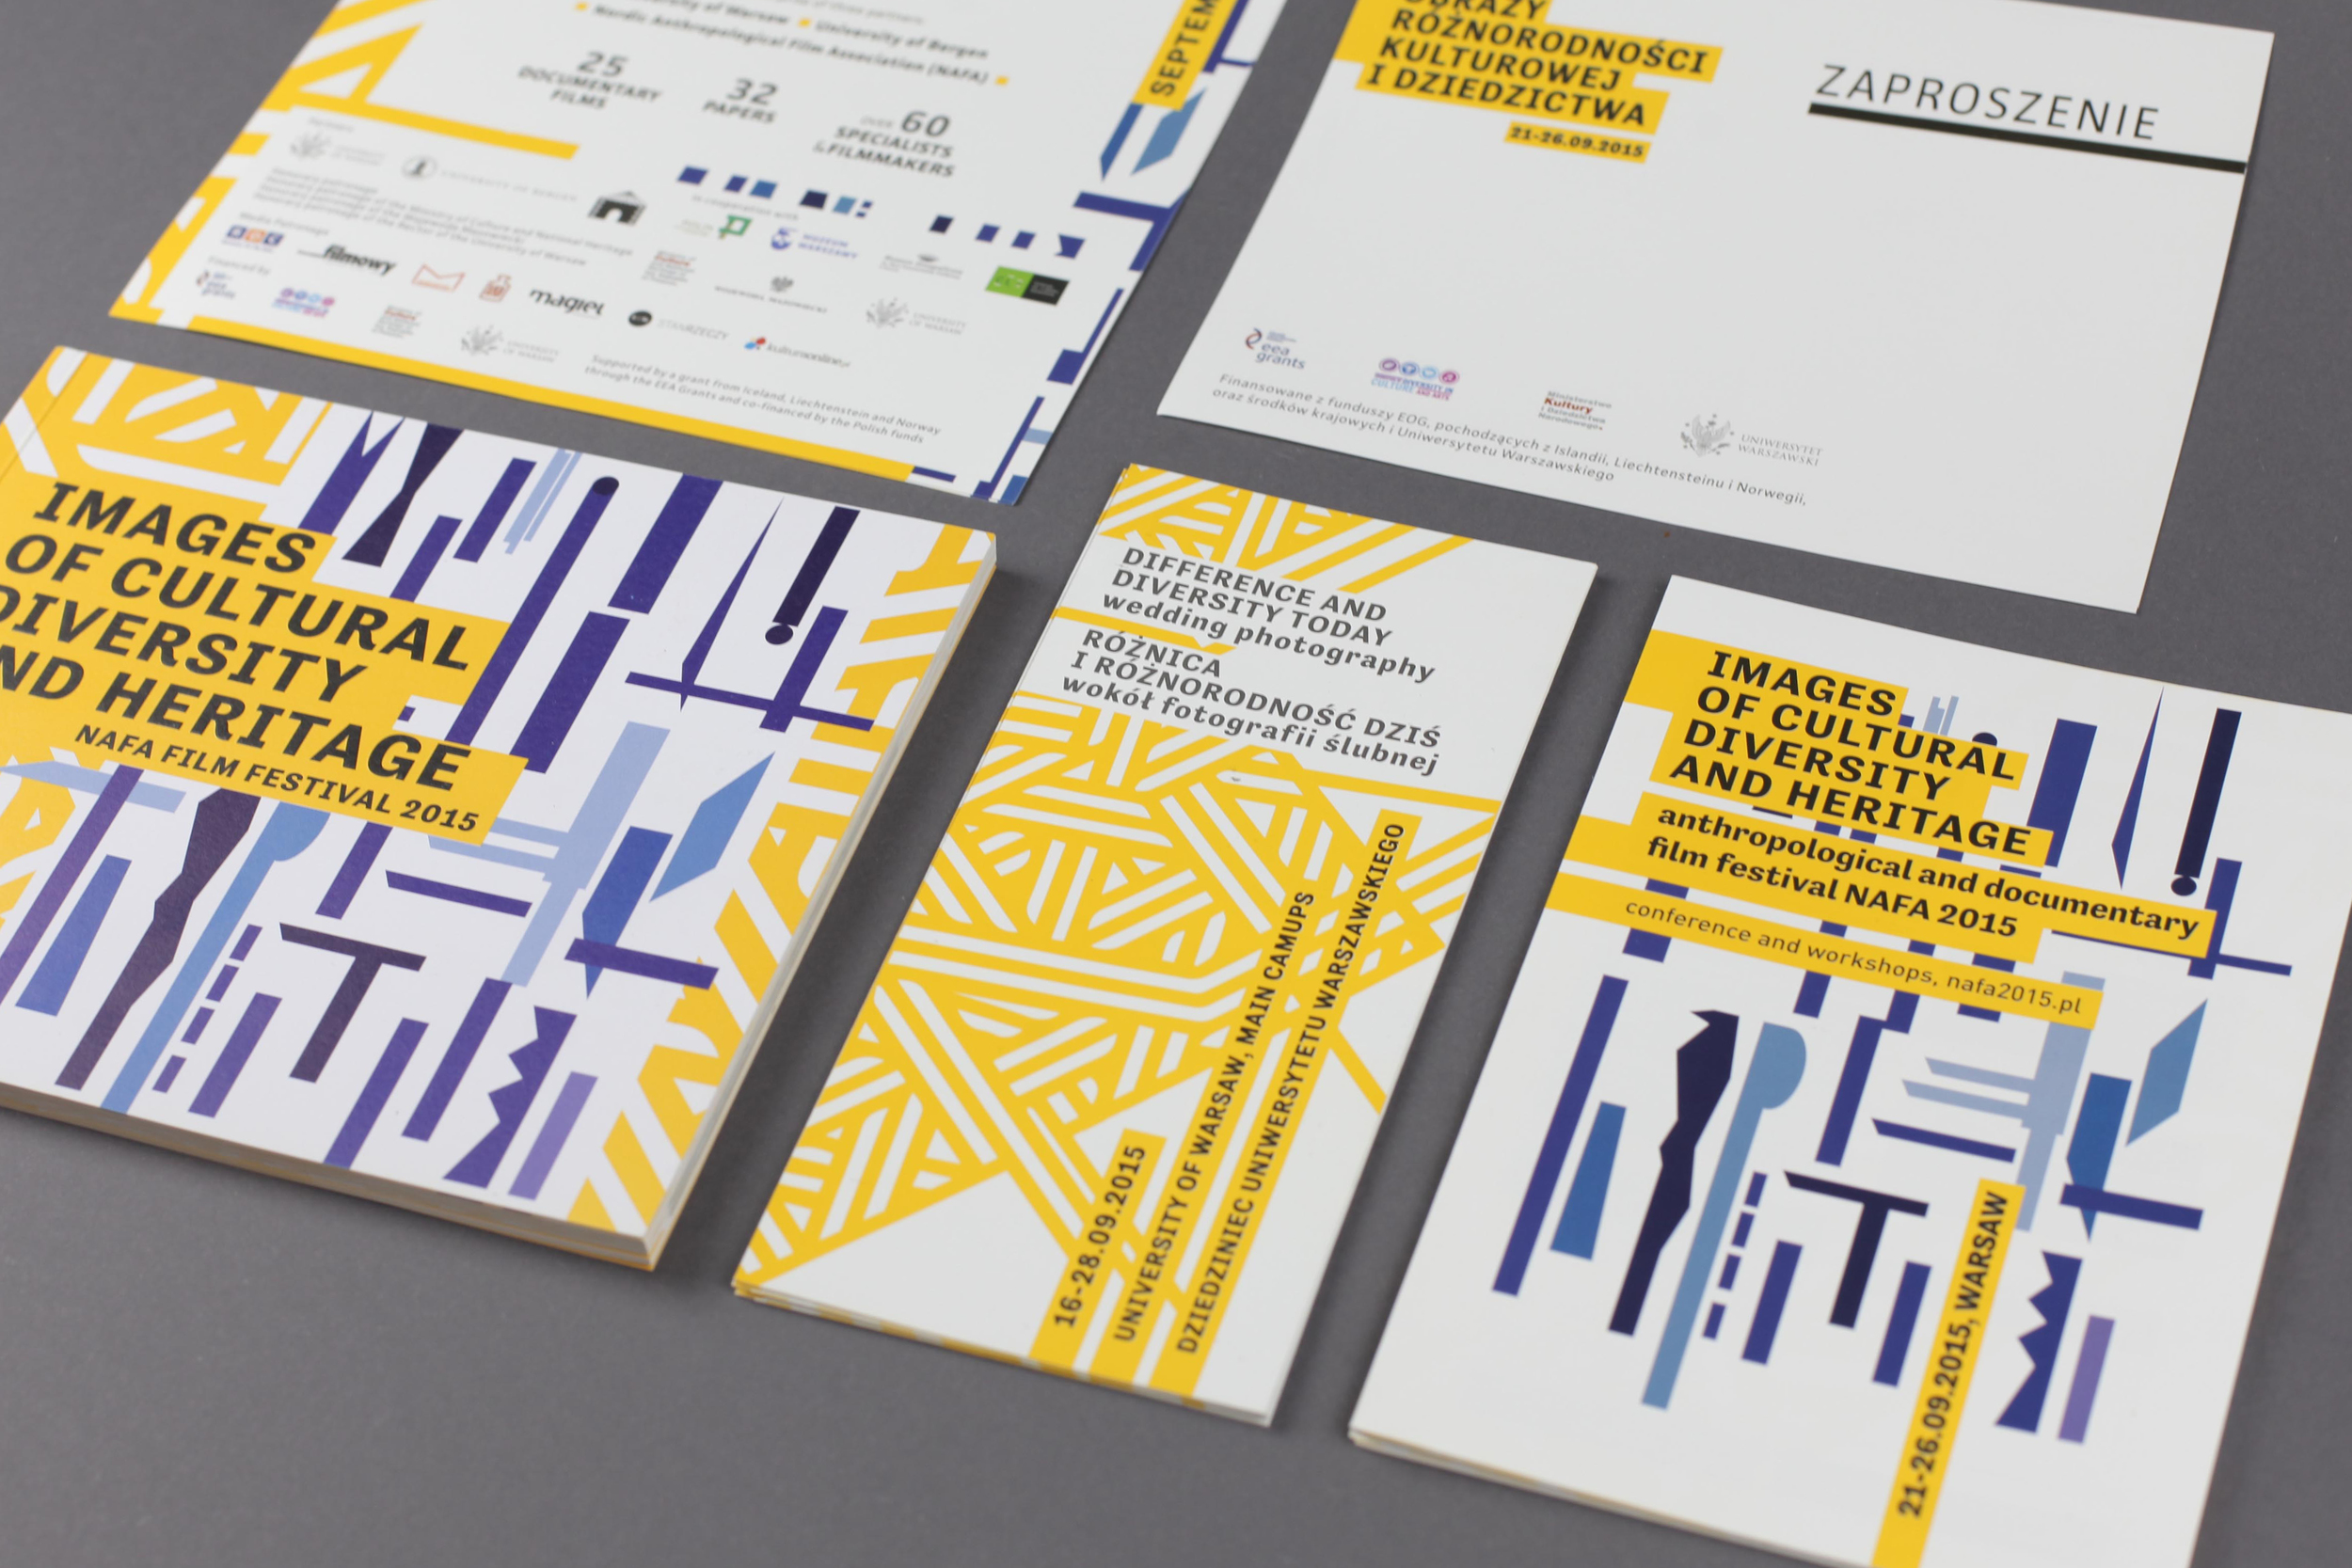 IMAGES OF CULTURAL DIVERSITY AND HERITAGE    graphic design, layout, full event ID   This project was the outcome of the partnership of three institutions: the University of Warsaw, the University of Bergen and the Nordic Anthropological Film Association ( NAFA ).